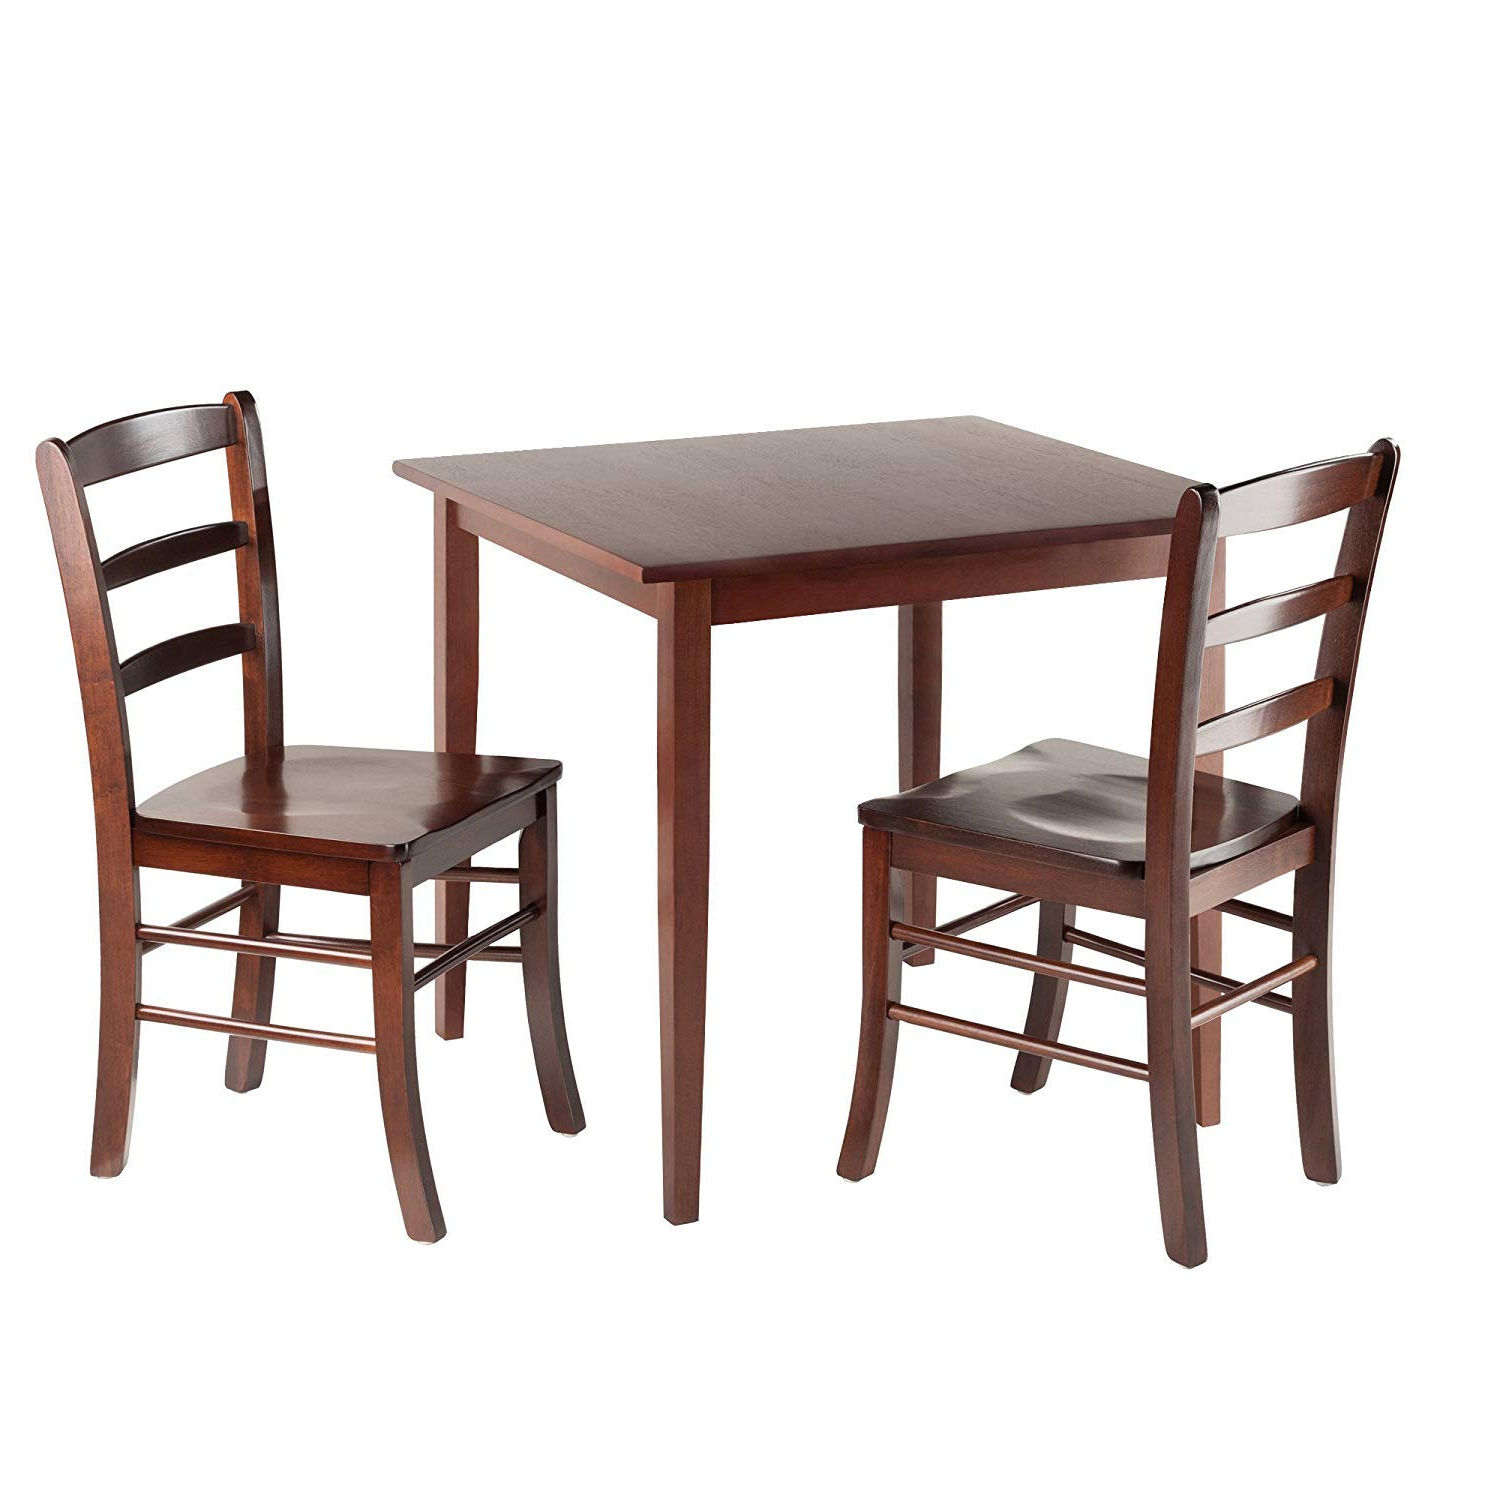 Transitional Antique Walnut Square Casual Dining Tables Intended For Famous Winsome Wood Groveland 3Pc Square Dining Table With 2 Chairs (View 16 of 25)